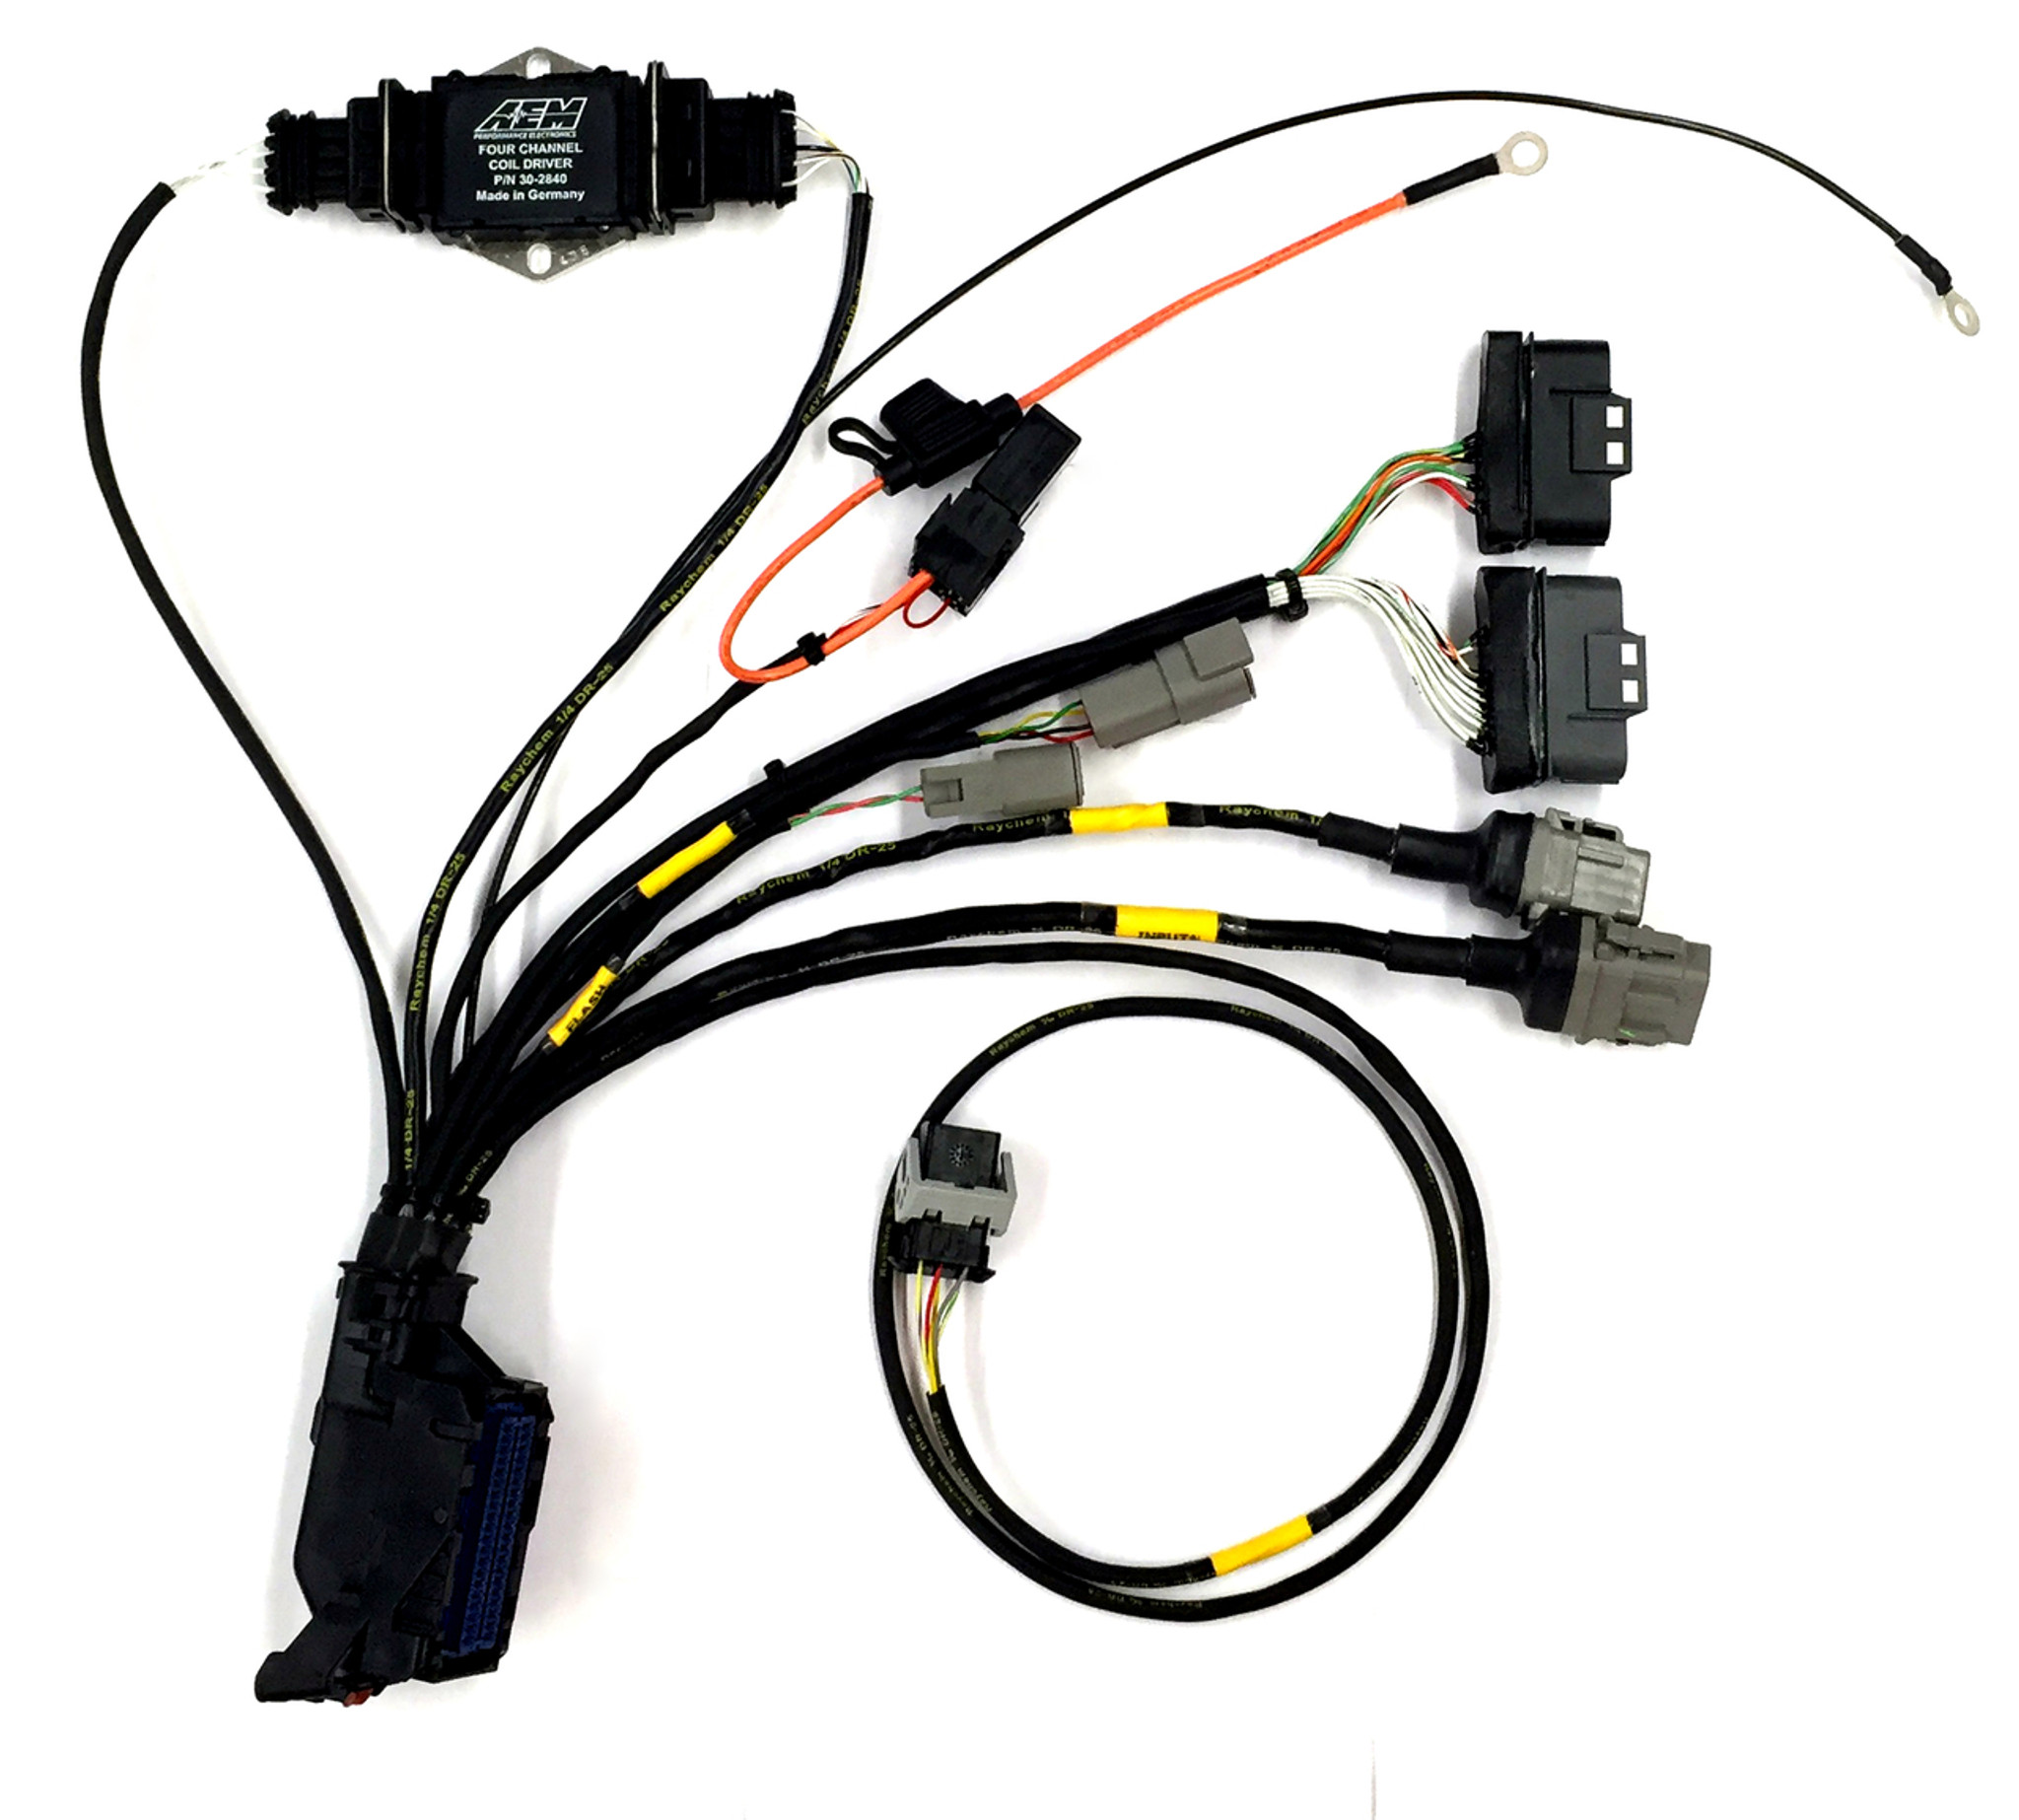 hight resolution of infinity ecu plug and play wiring harness